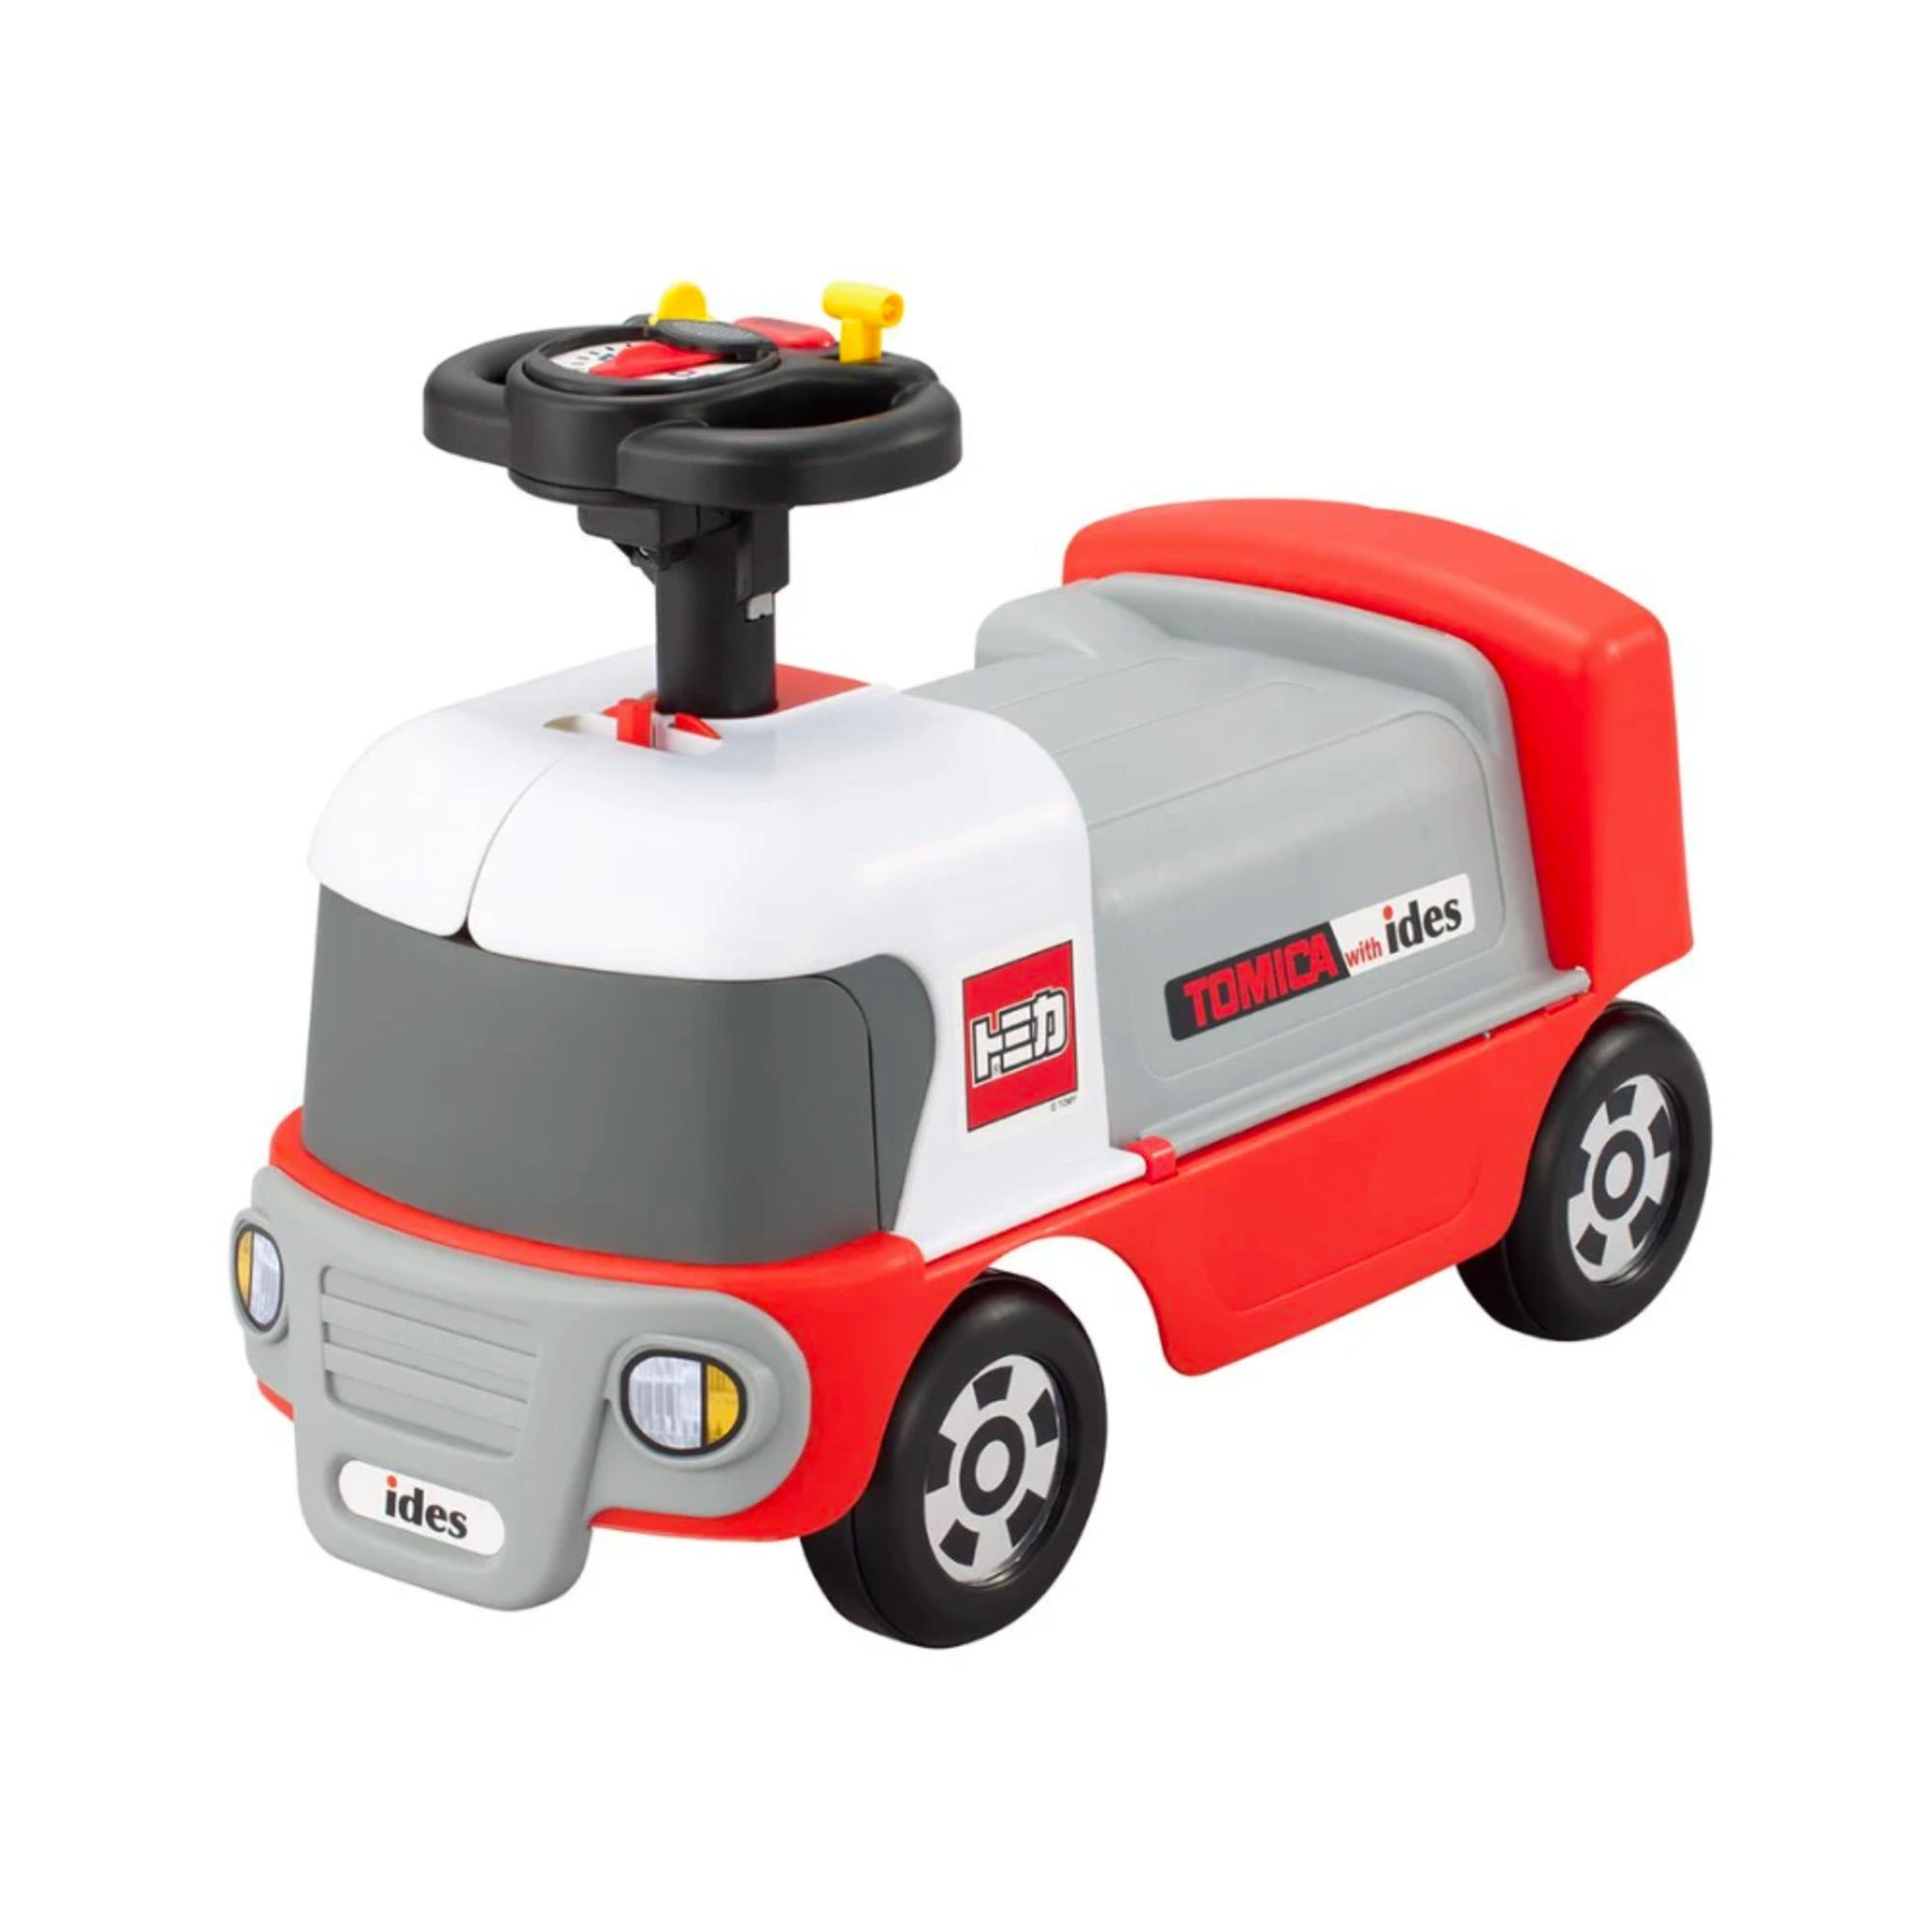 Ides Tomica Circuit Trailer, red